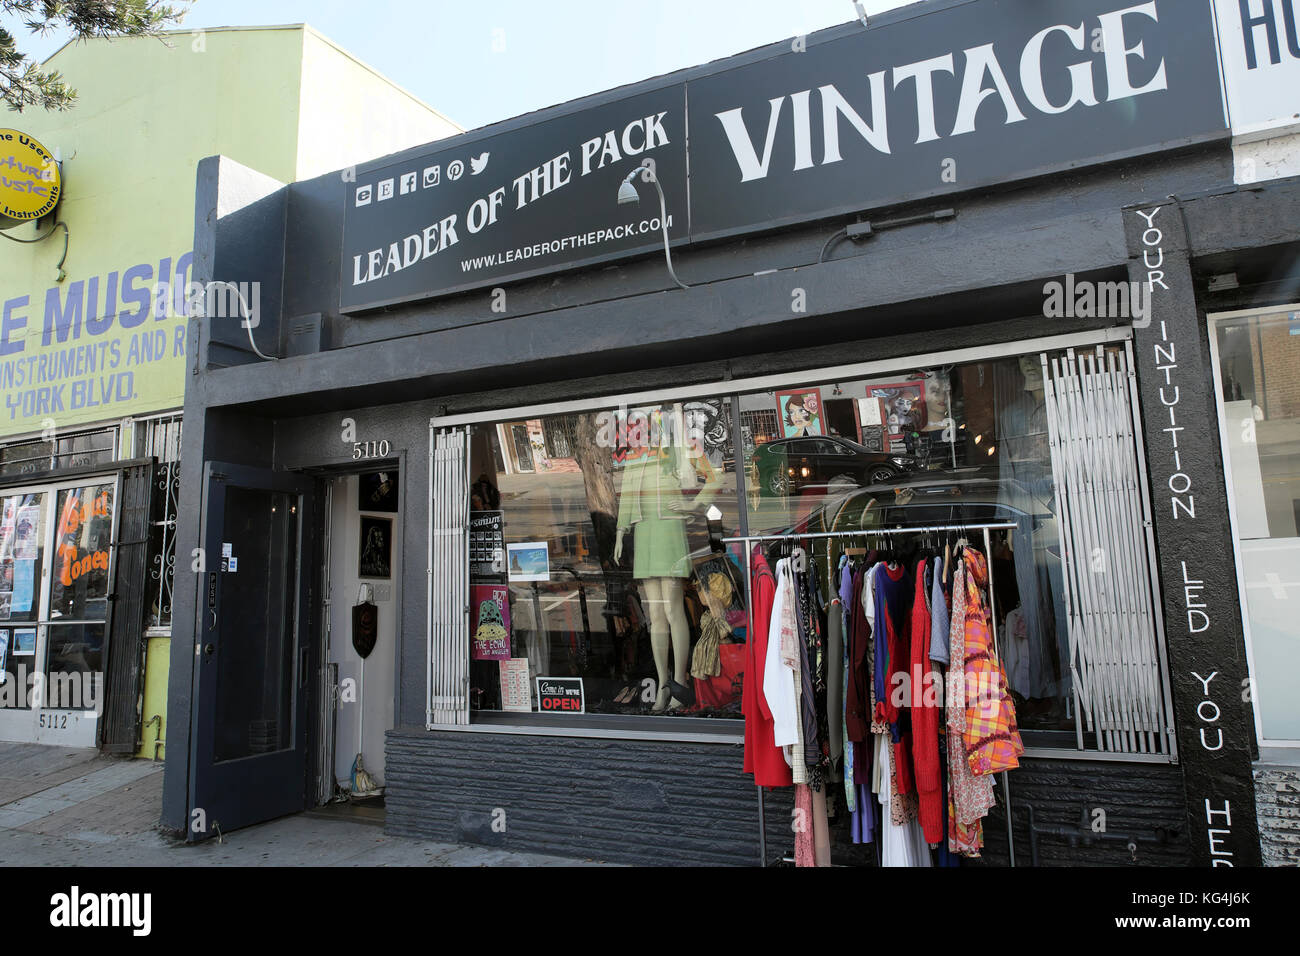 0d96a357694 Exterior view of 'Leader of the Pack' Vintage Clothing Store on York  Boulevard in